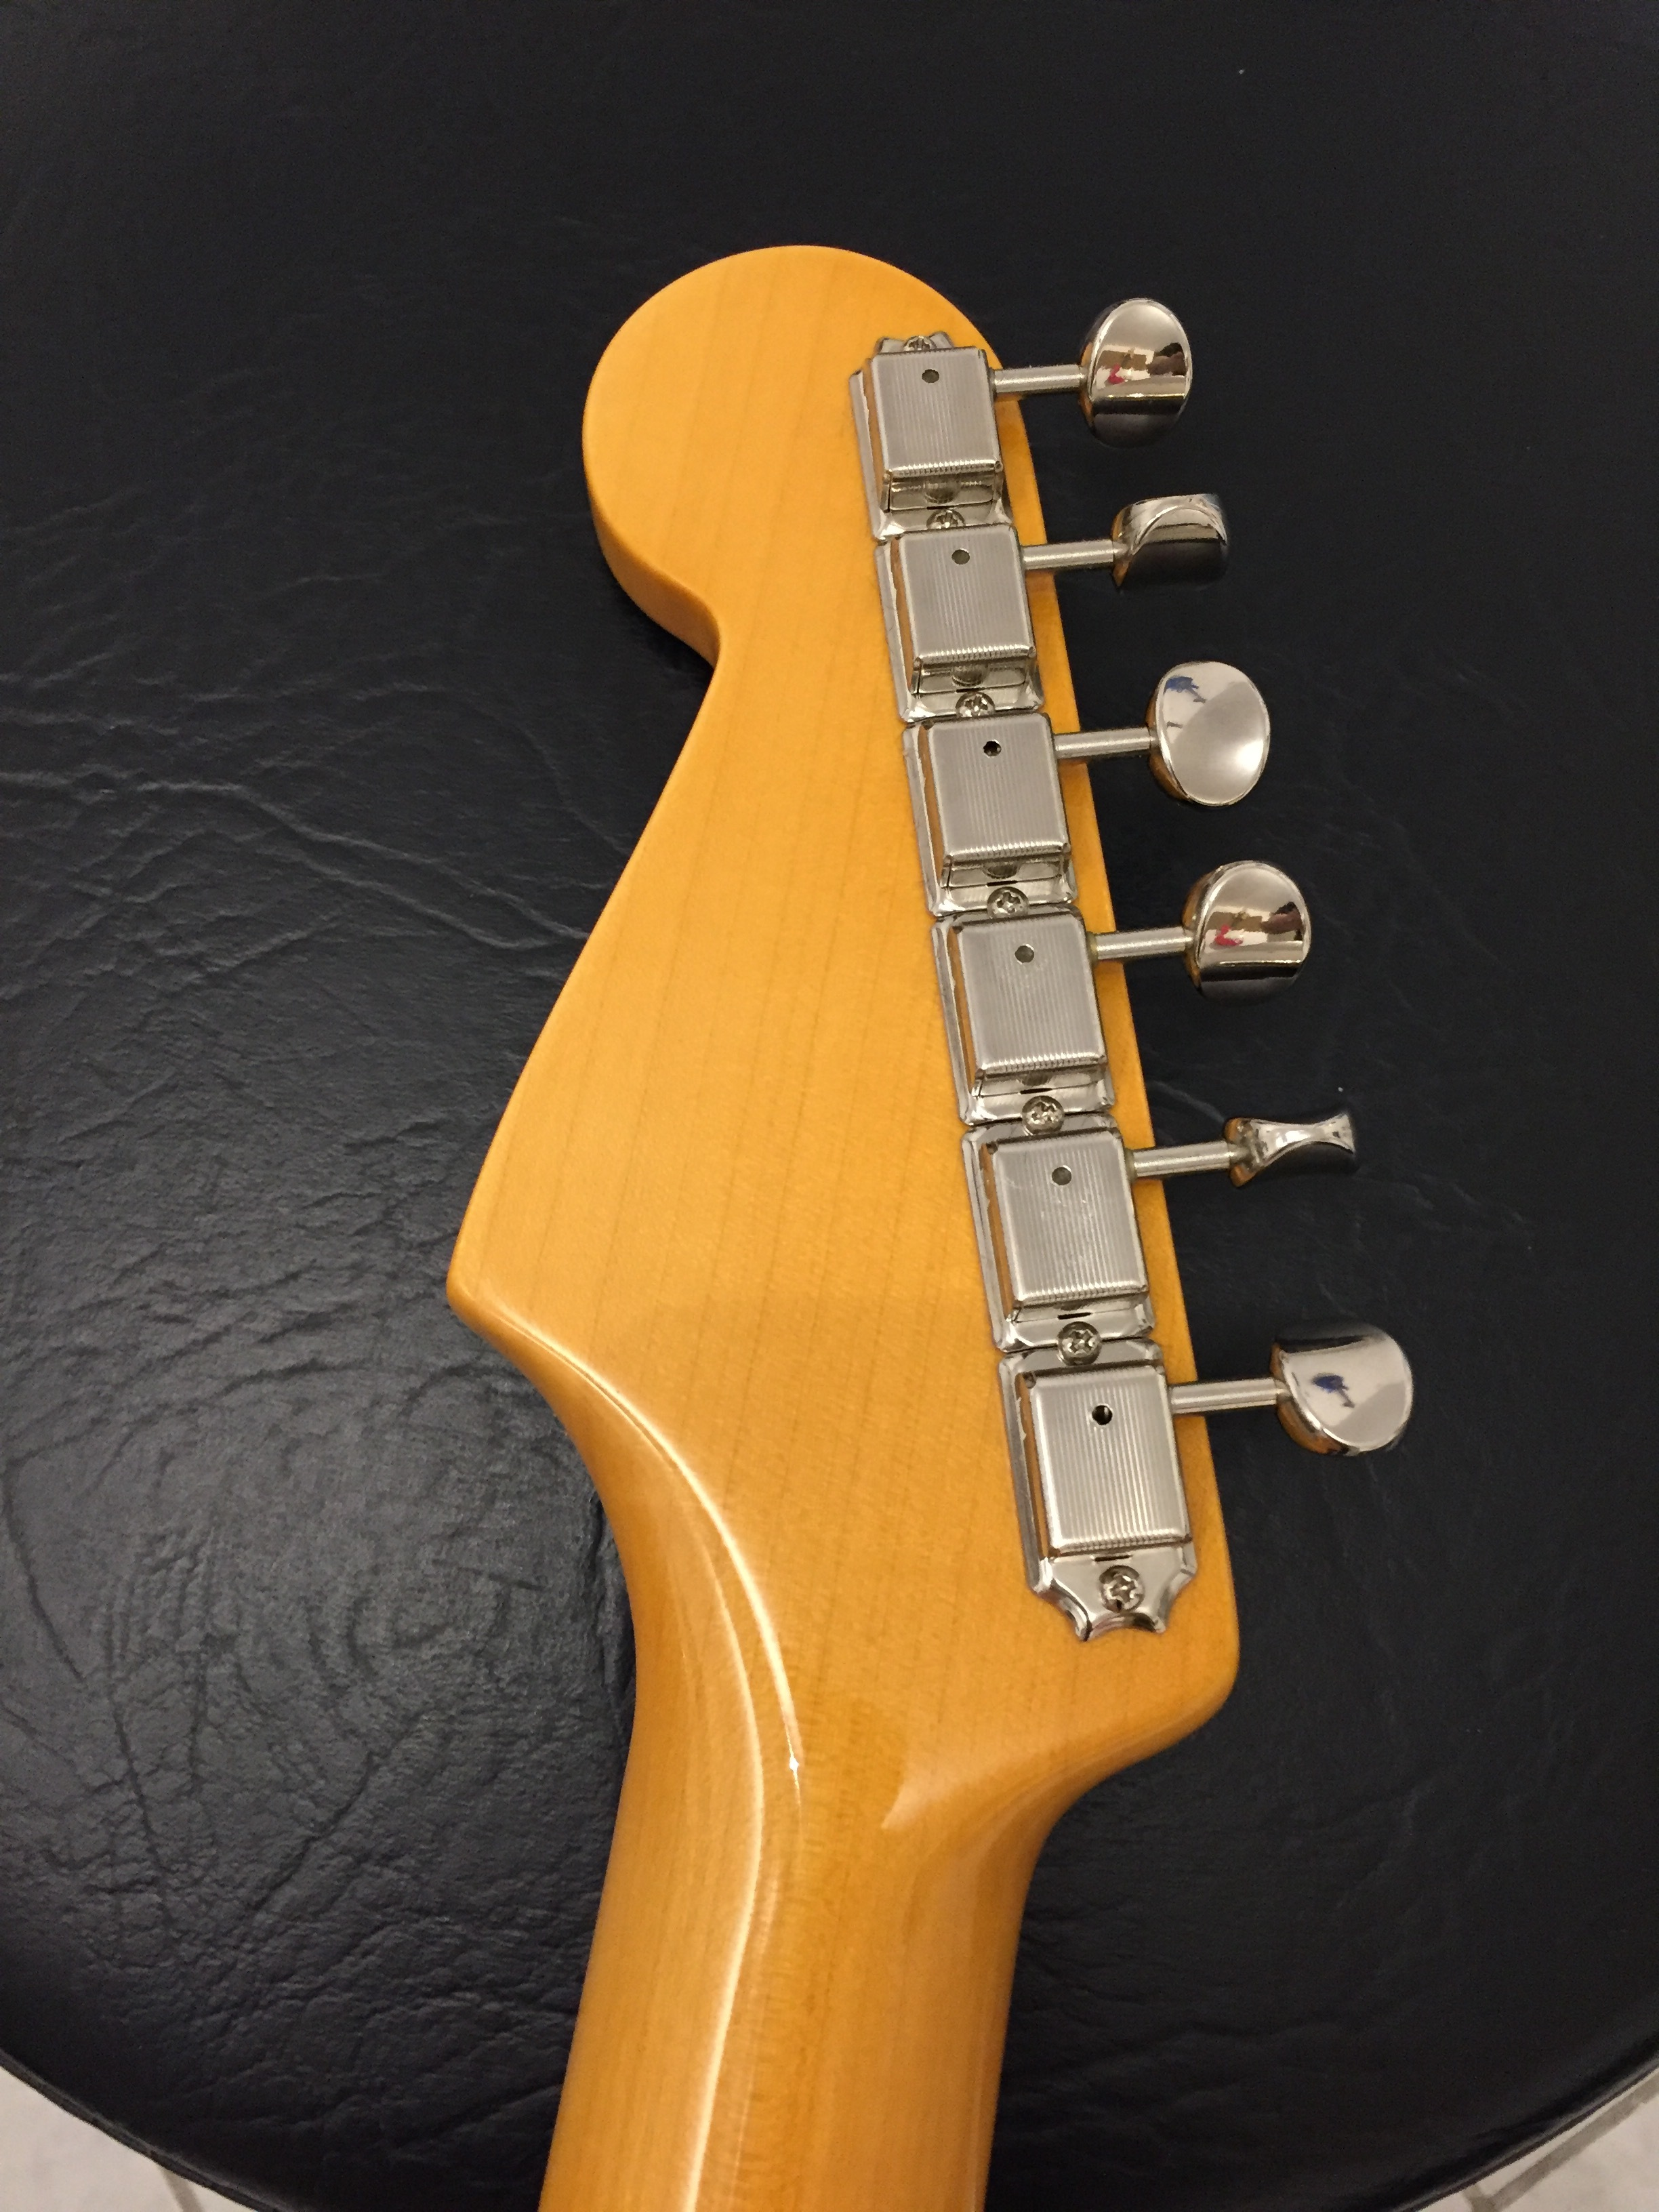 eric johnson strat dating During the 2010 acoustic guitar masters tour, eric johnson spoke at length on meditation, spirituality, songwriting, jimi, guitars, and the new album.